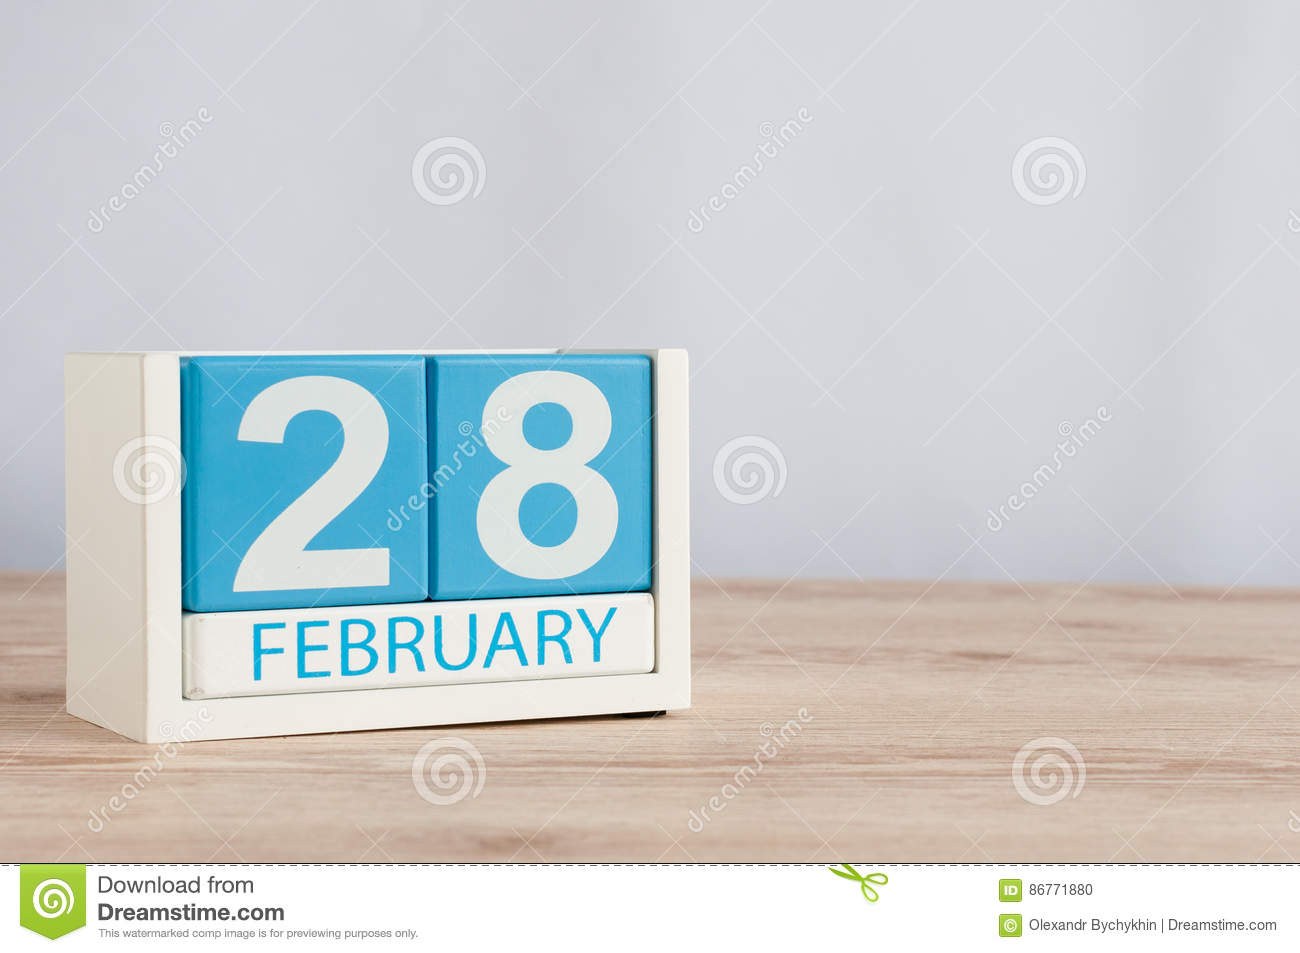 February 28th. Cube calendar for february 28 on wooden surface with empty space For text. Not Leap year or intercalary